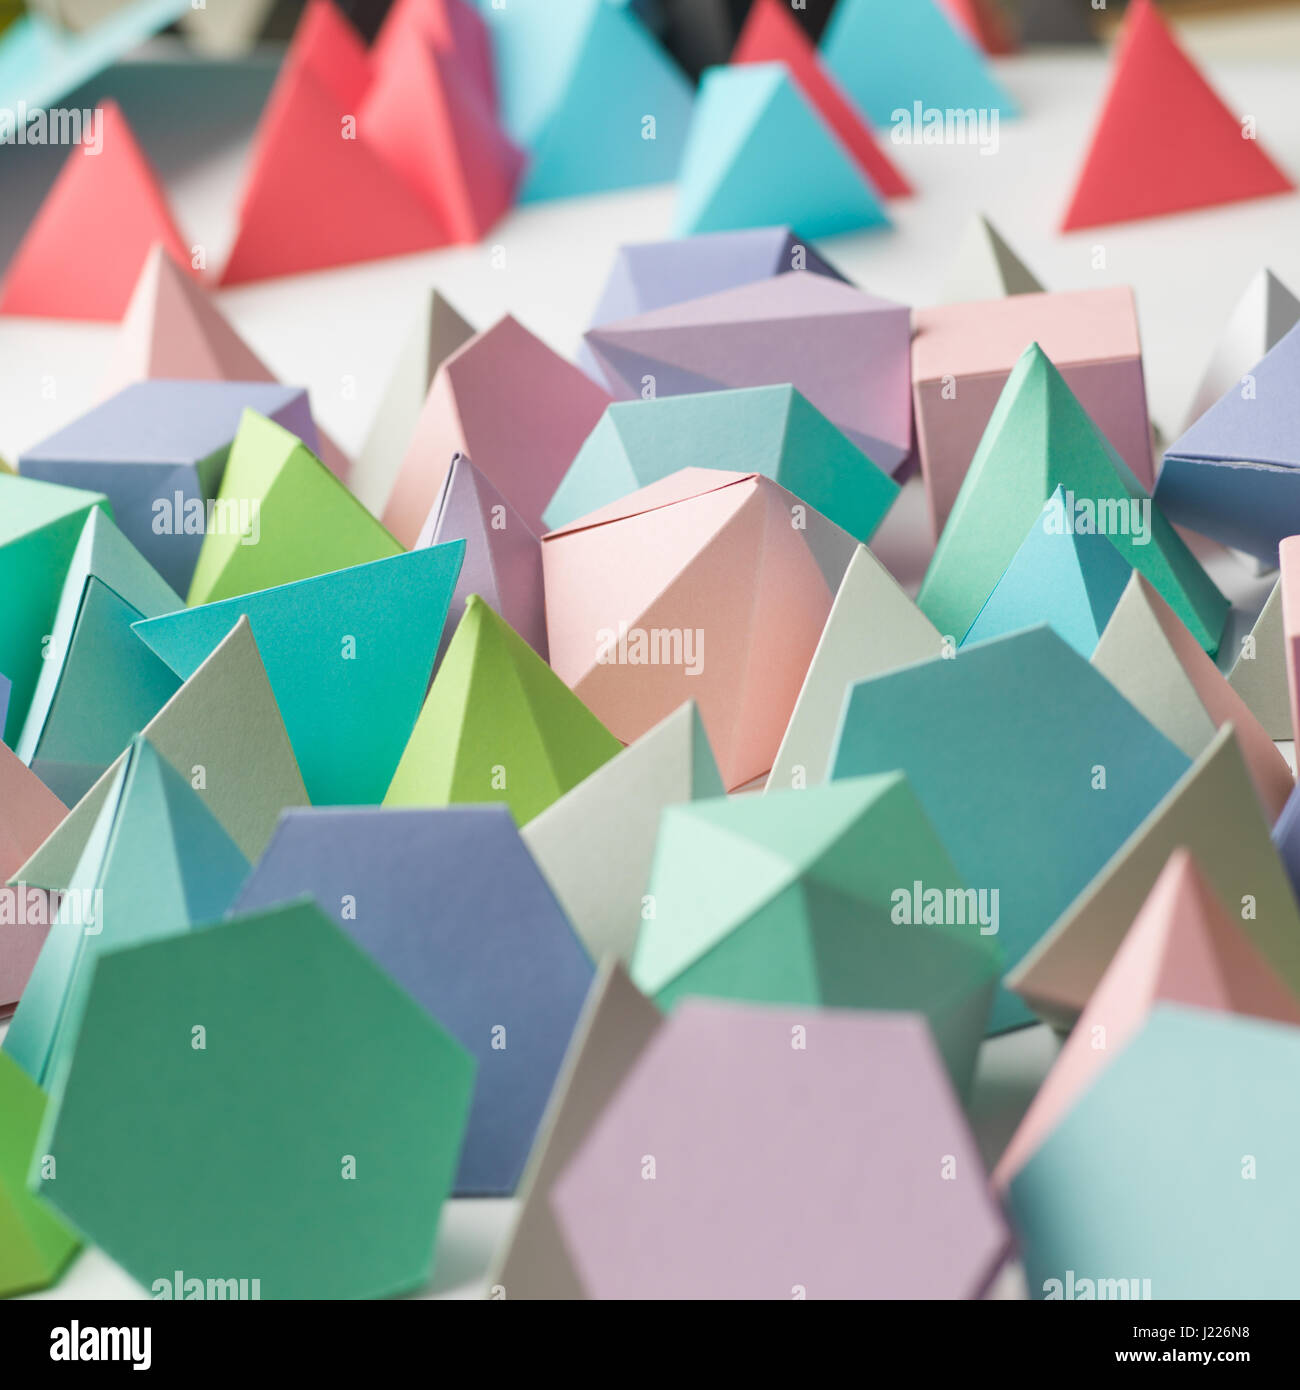 Paper Models Stock Photos Paper Models Stock Images Alamy